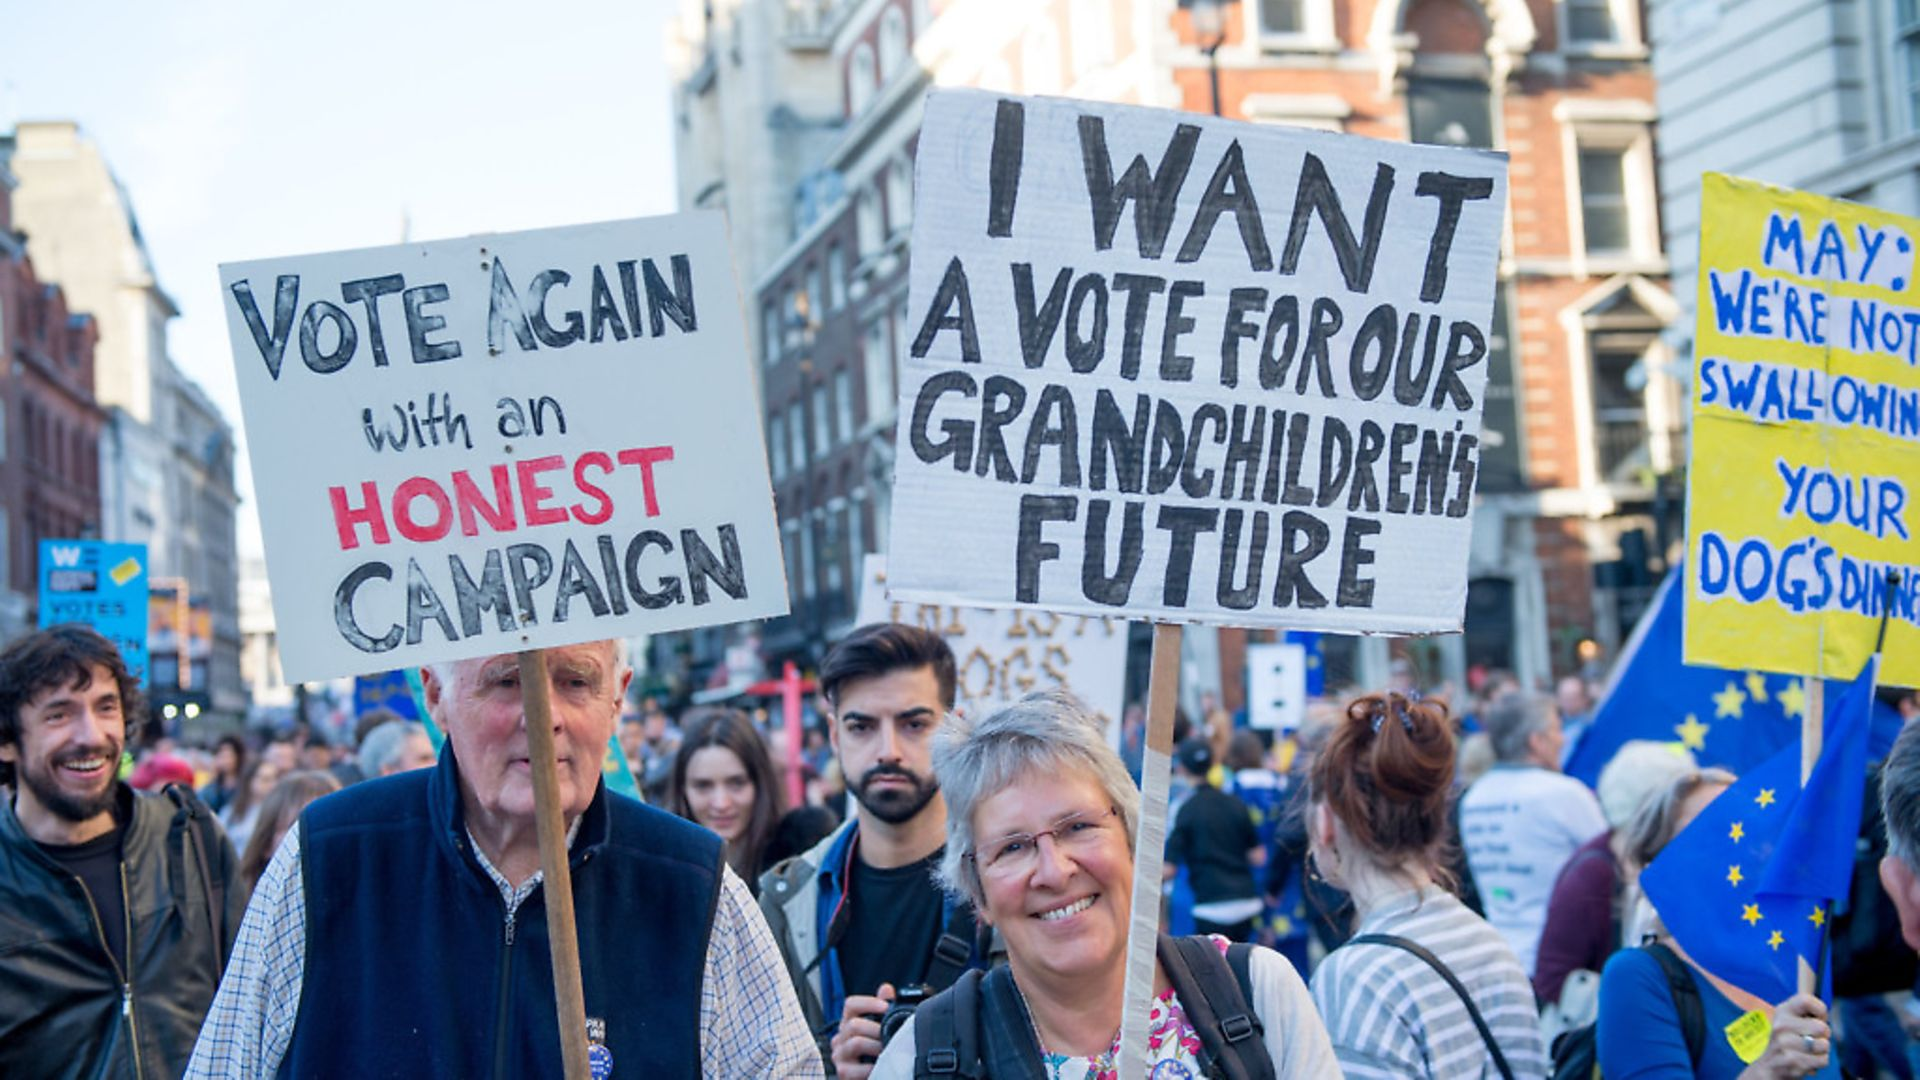 Members Of The Public March To Demand A People's Vote On Brexit. (Photo by Ollie Millington/Getty Images) - Credit: Getty Images